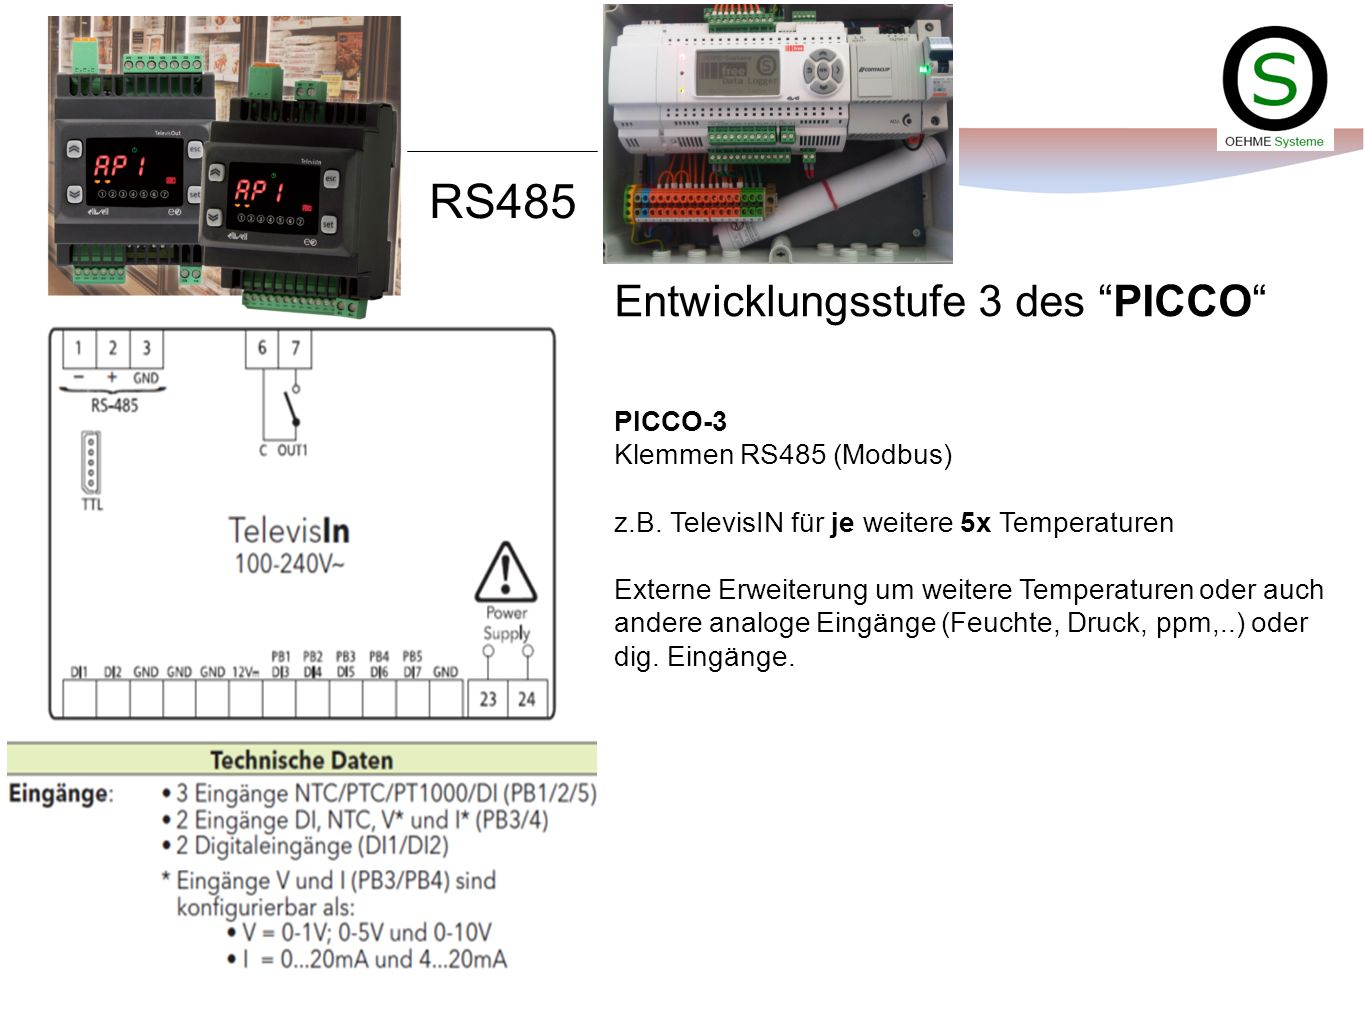 RS485 Entwicklungsstufe 3 des PICCO